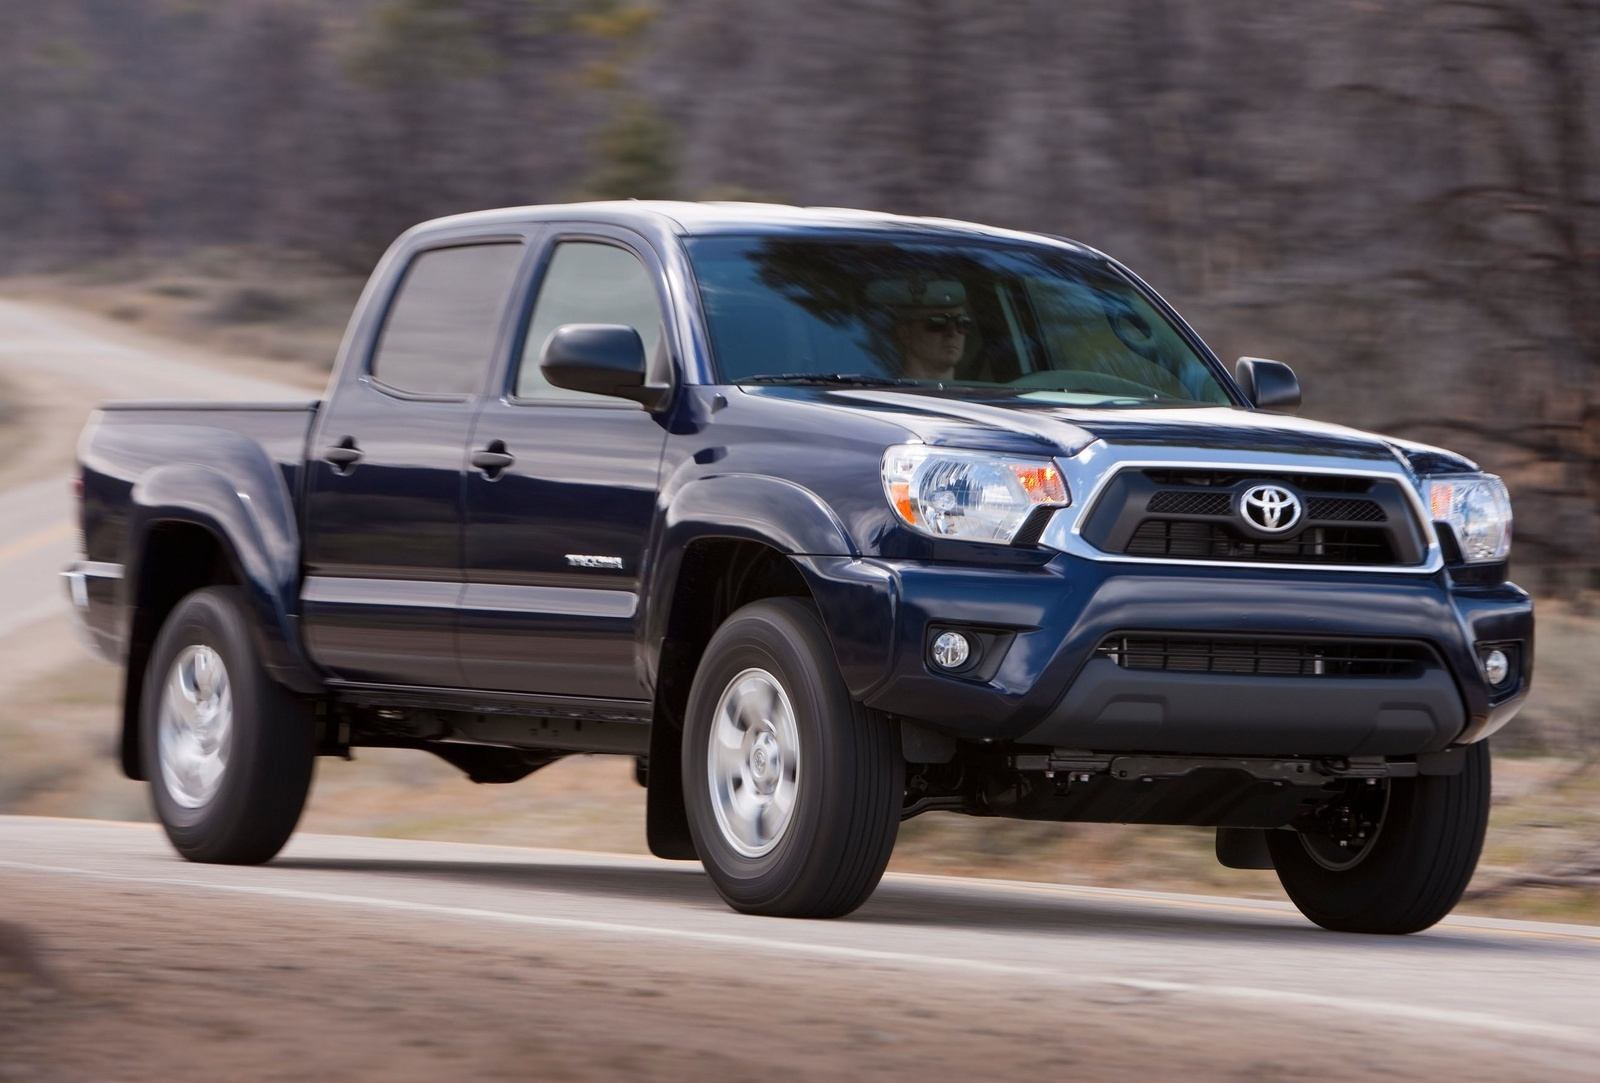 2014 Toyota Tacoma For Sale >> 2014 Toyota Tacoma Overview Cargurus